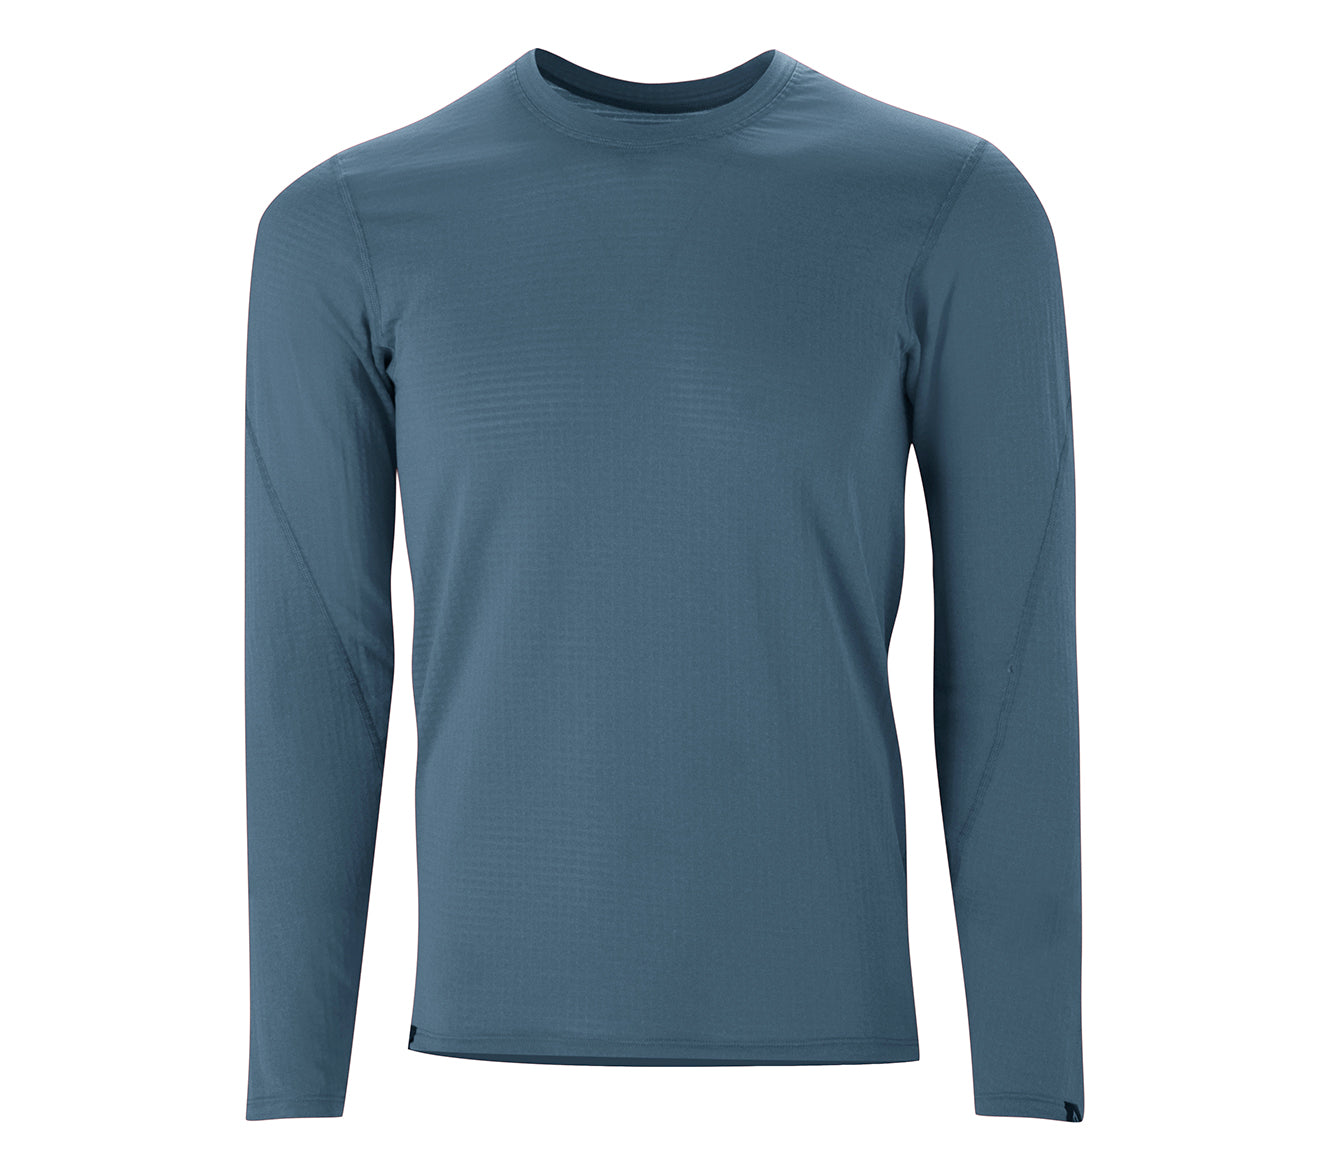 GRYPHON CREW LONG SLEEVE MEN'S